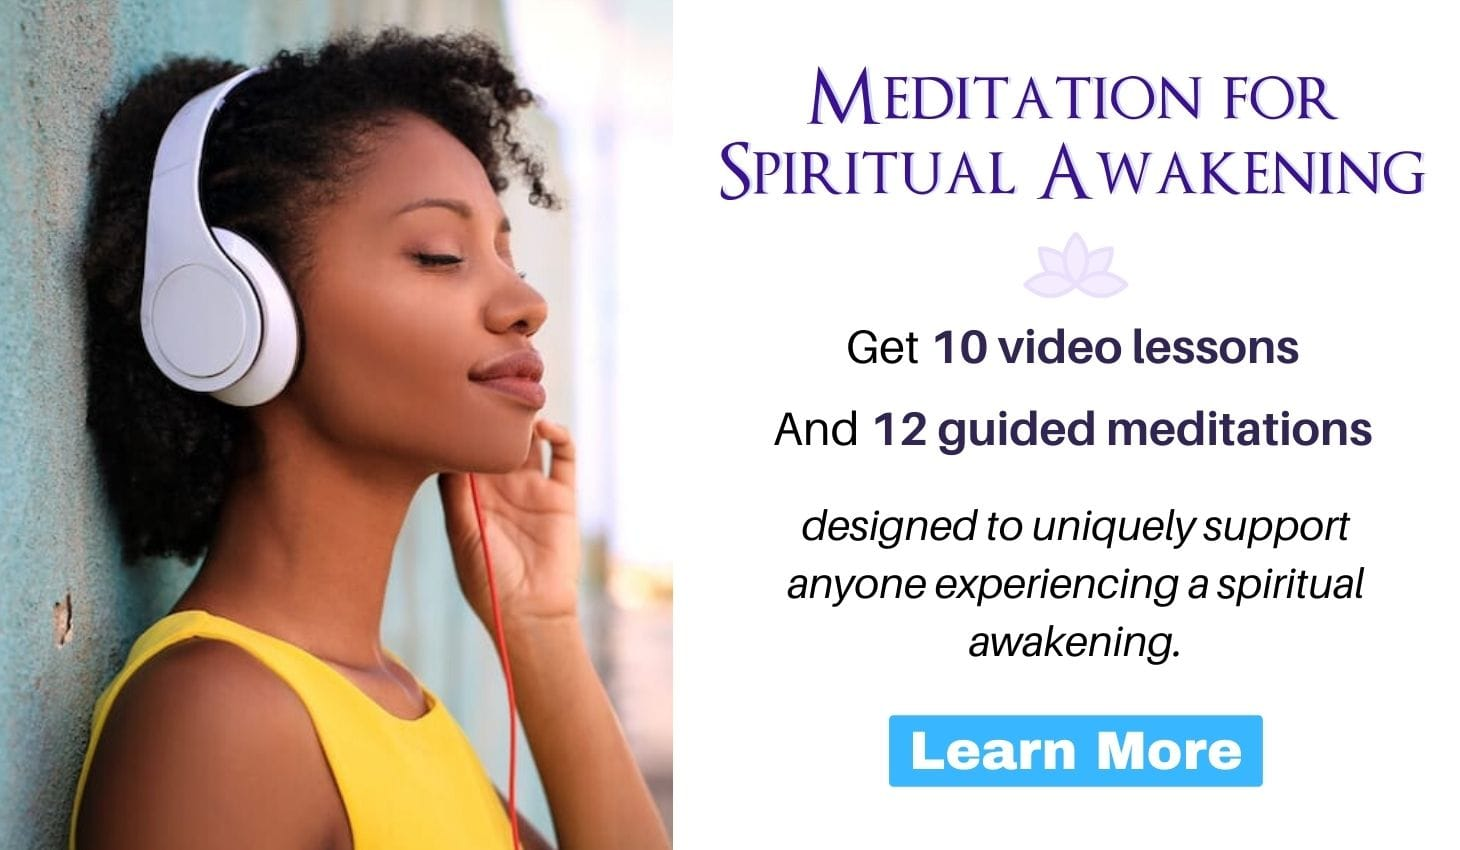 Meditation for Spiritual Awakening: get 10 video lessons and 12 guided meditations designed to uniquely support anyone experiencing a spiritual awakening. Click to learn more.